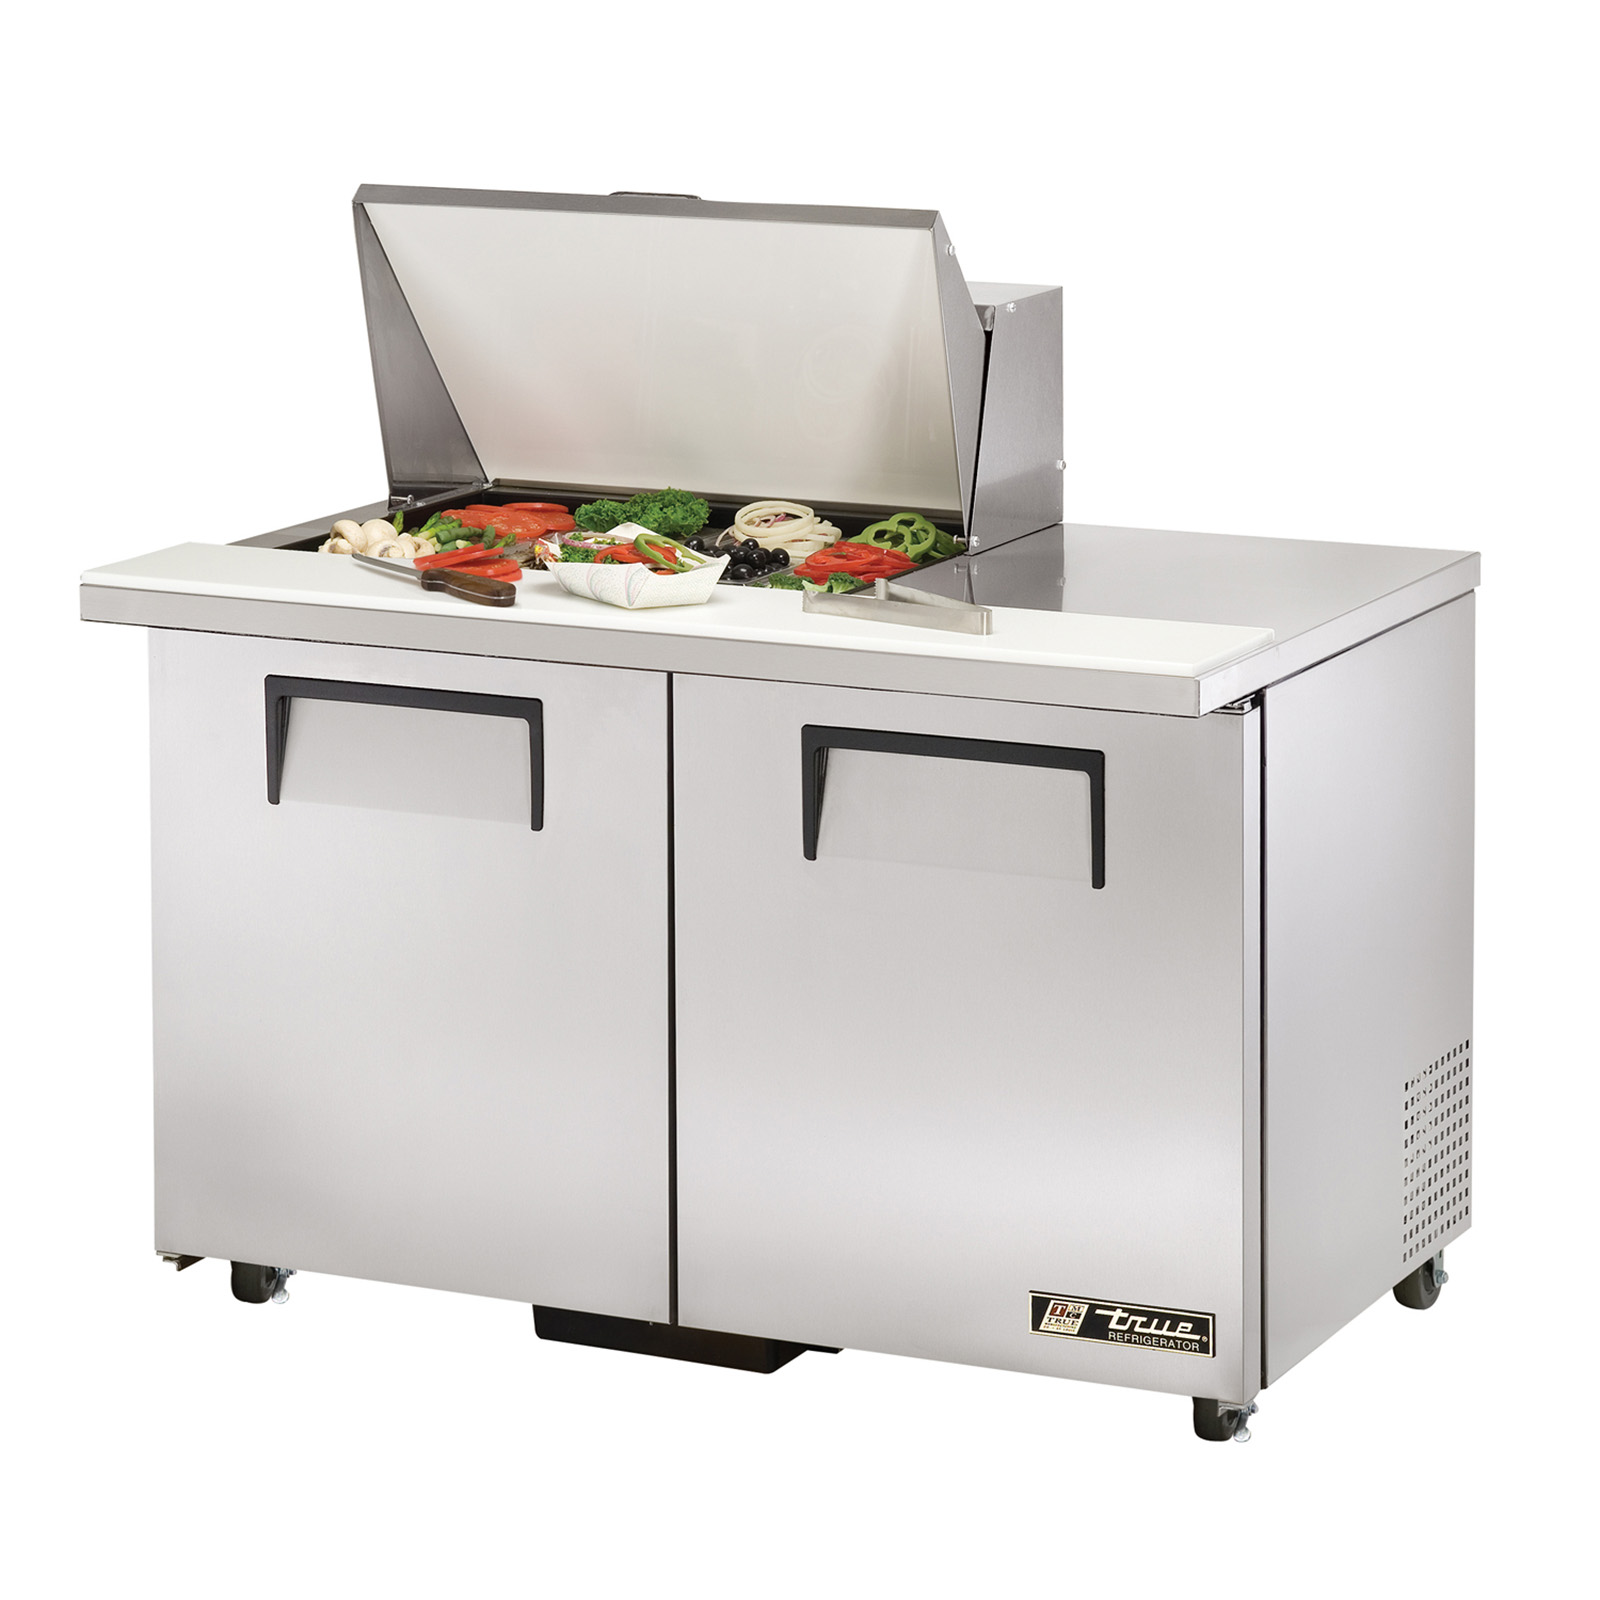 TSSU-48-12M-B-ADA True - ADA Compliant Mega Top Sandwich/Salad Unit (12) 1/6 size (4